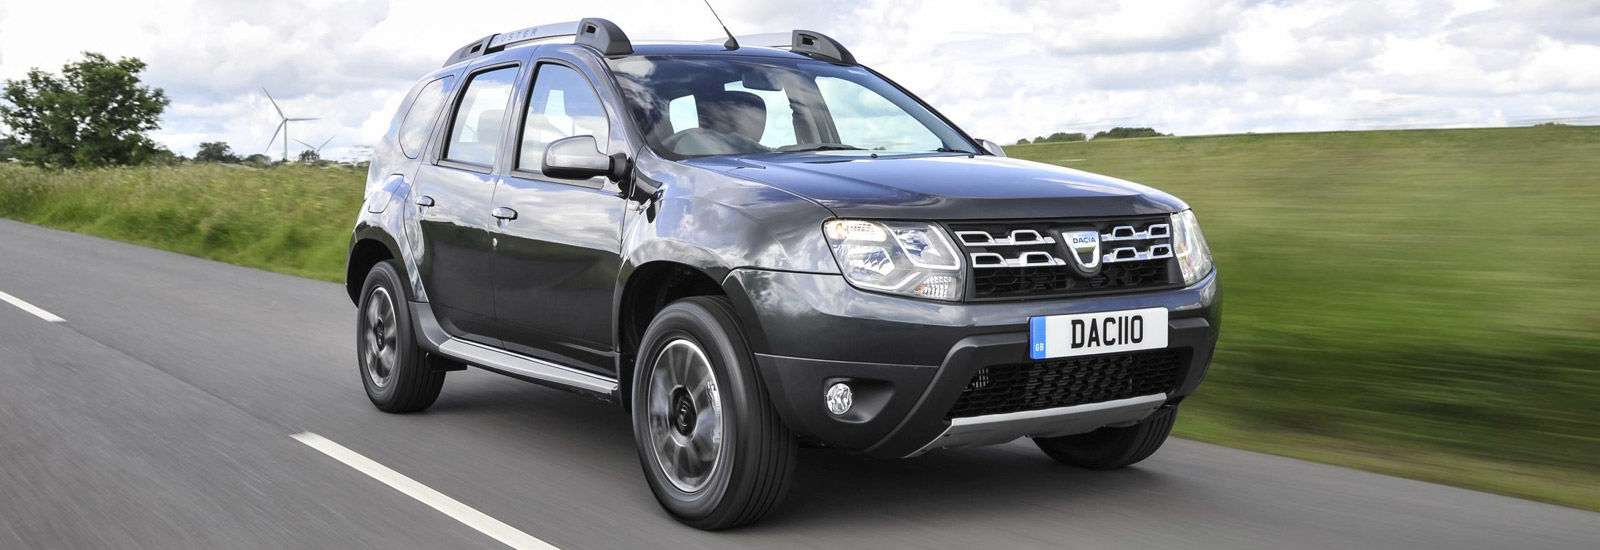 2018 Dacia Duster 7 Seater Price Specs Release Date Carwow